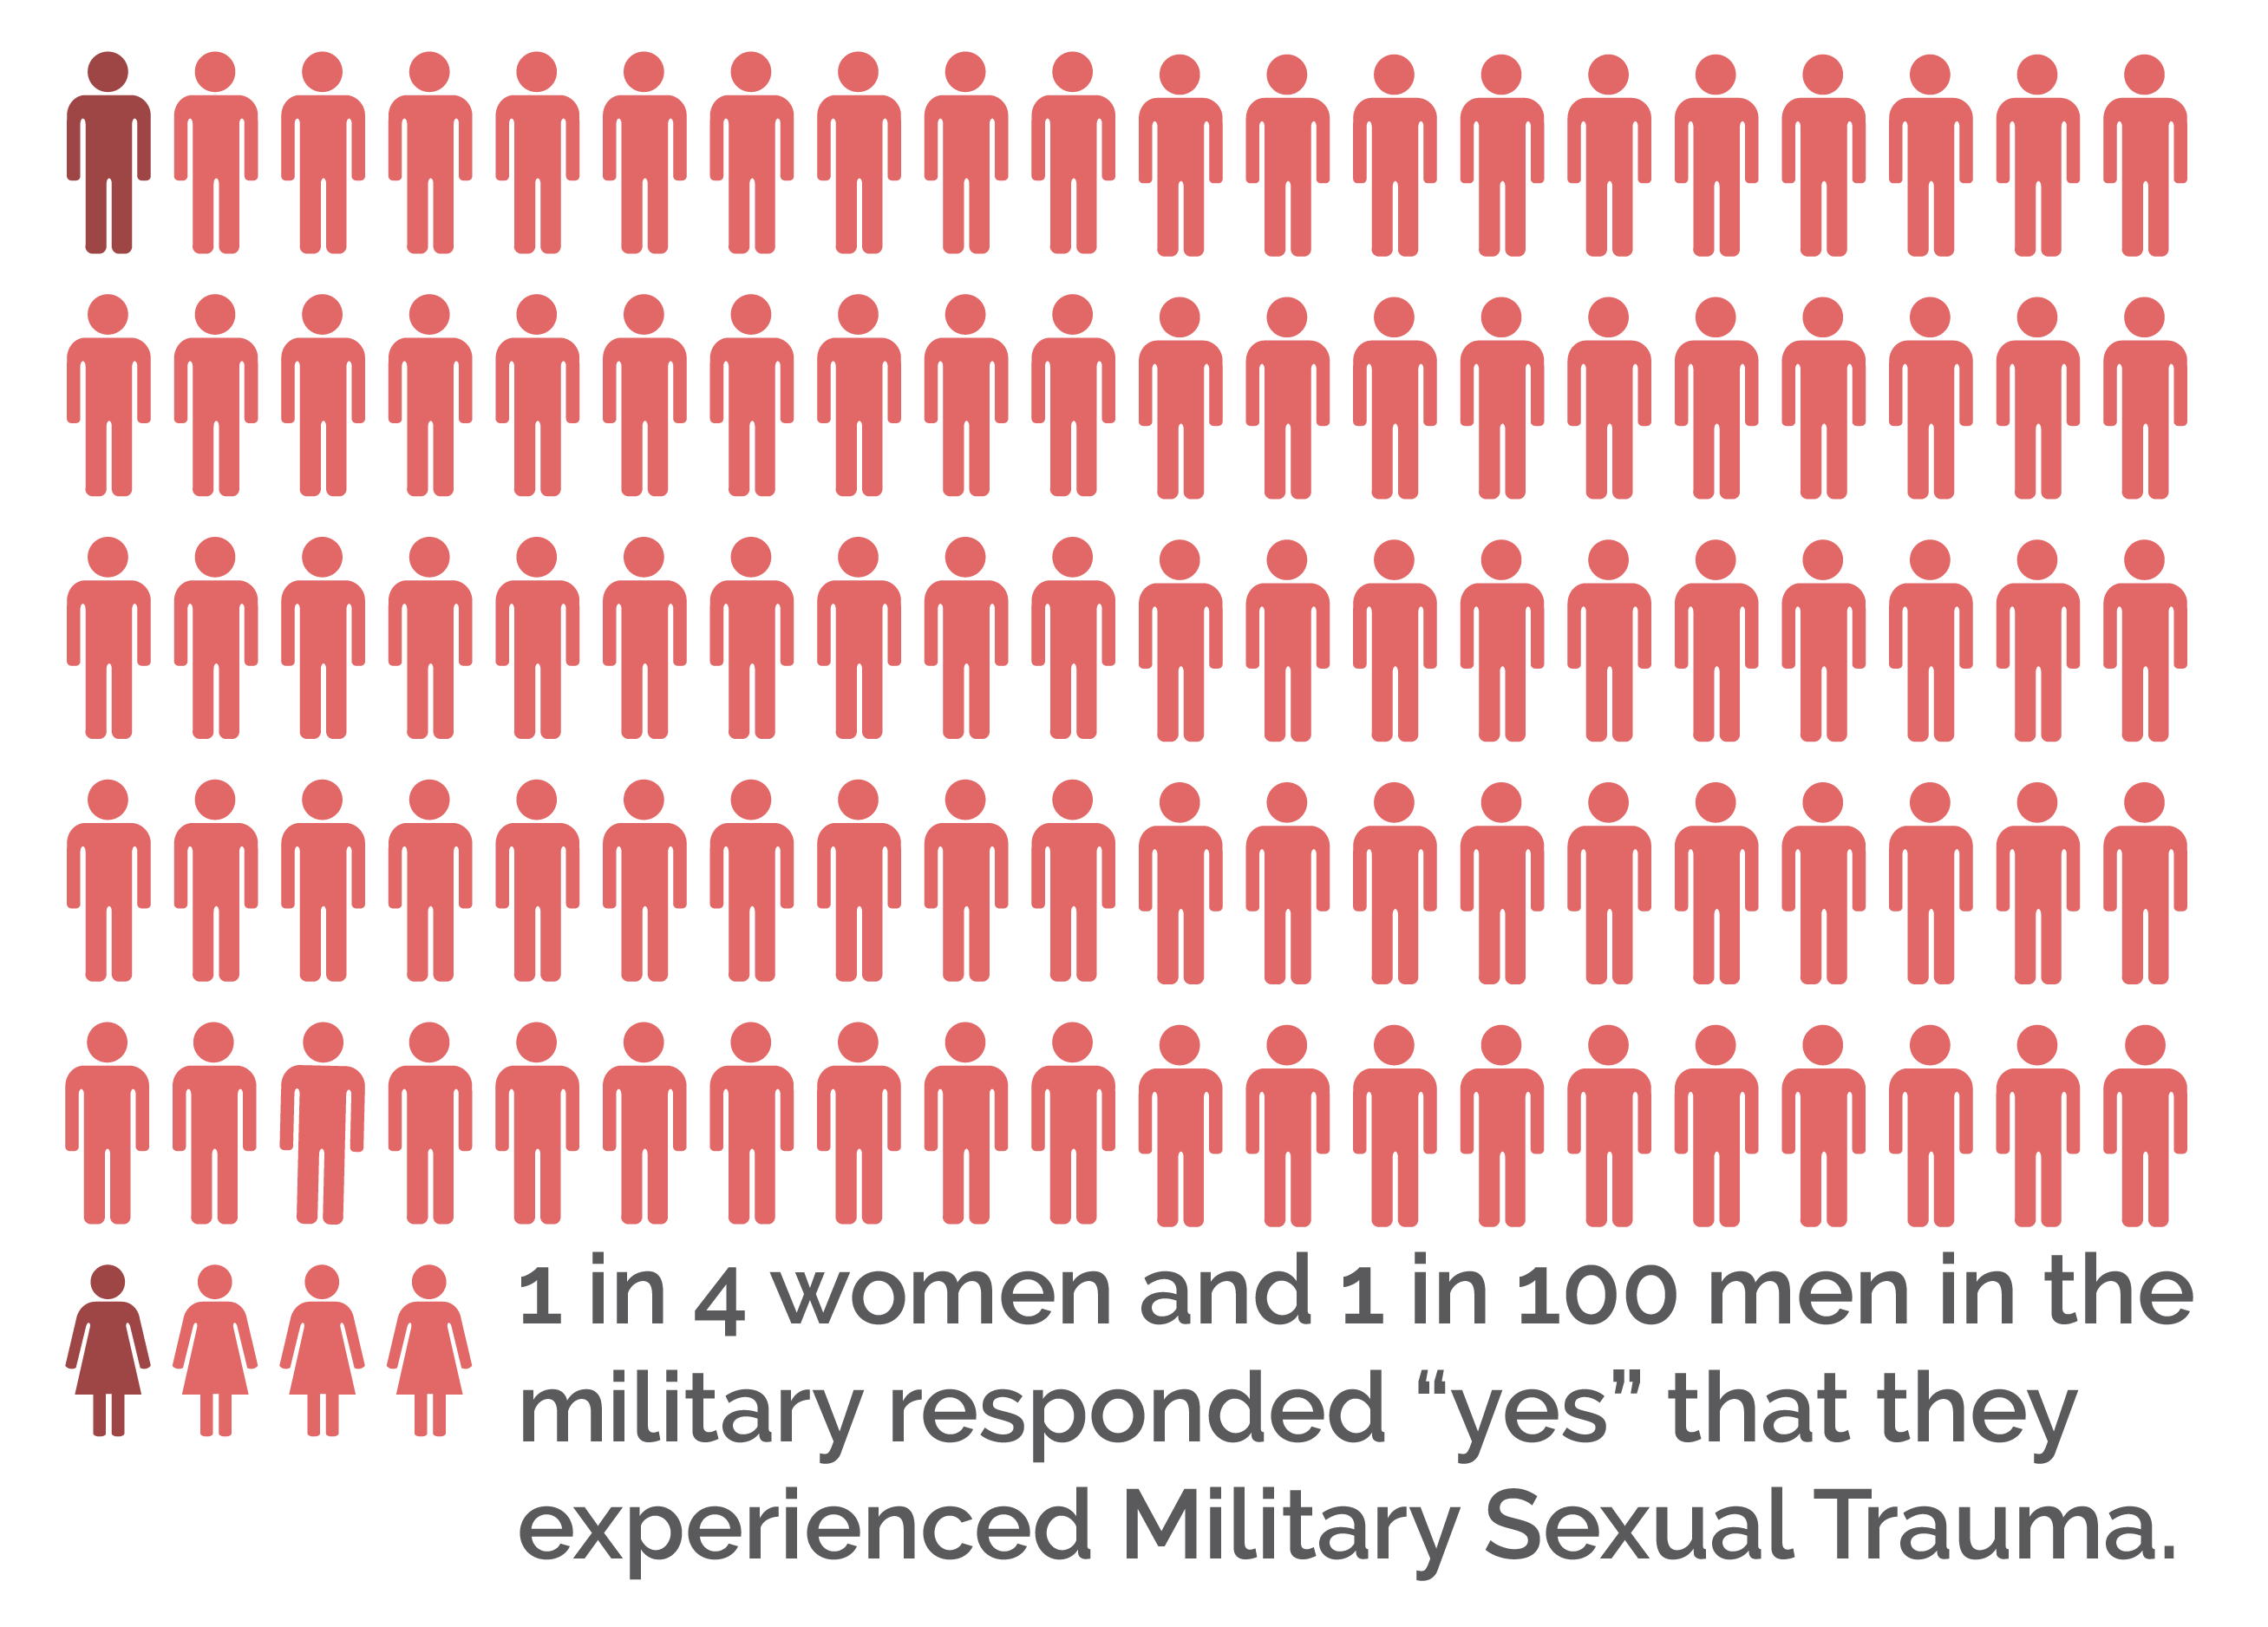 Mental Health Treatment for California Military - Military Sexual Trauma